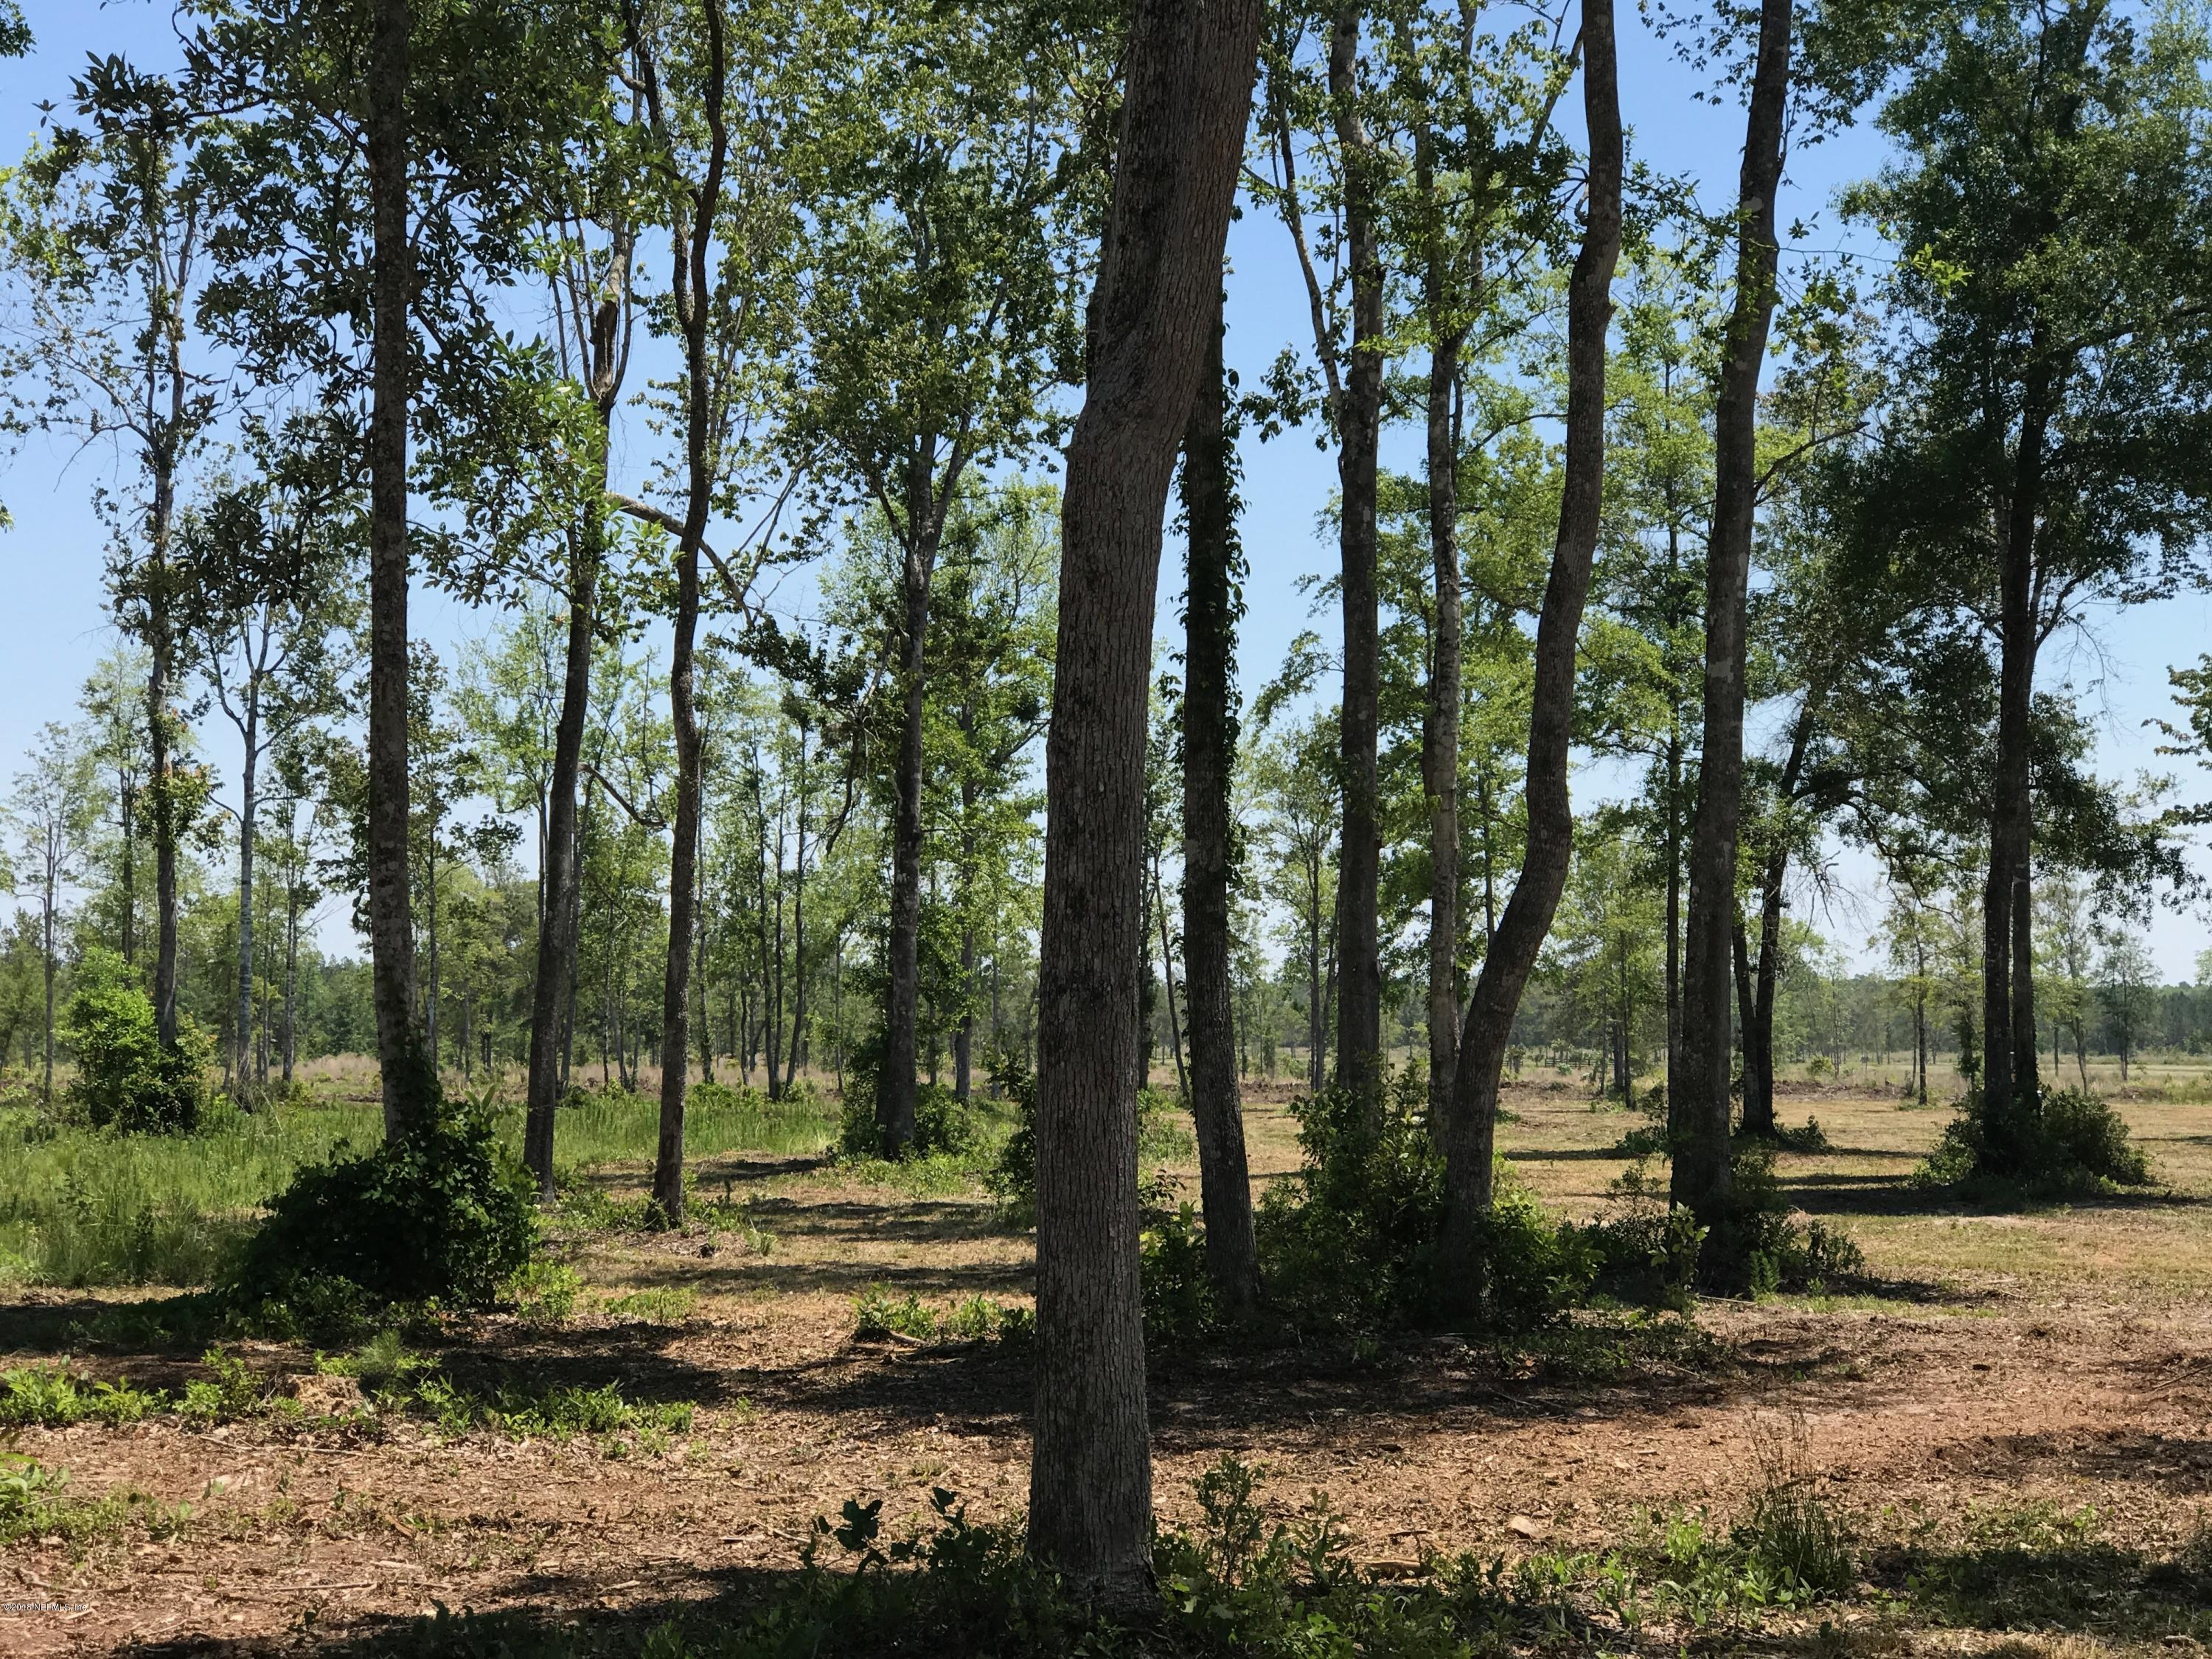 0 OLD DIXIE, CALLAHAN, FLORIDA 32011, ,Vacant land,For sale,OLD DIXIE,924272